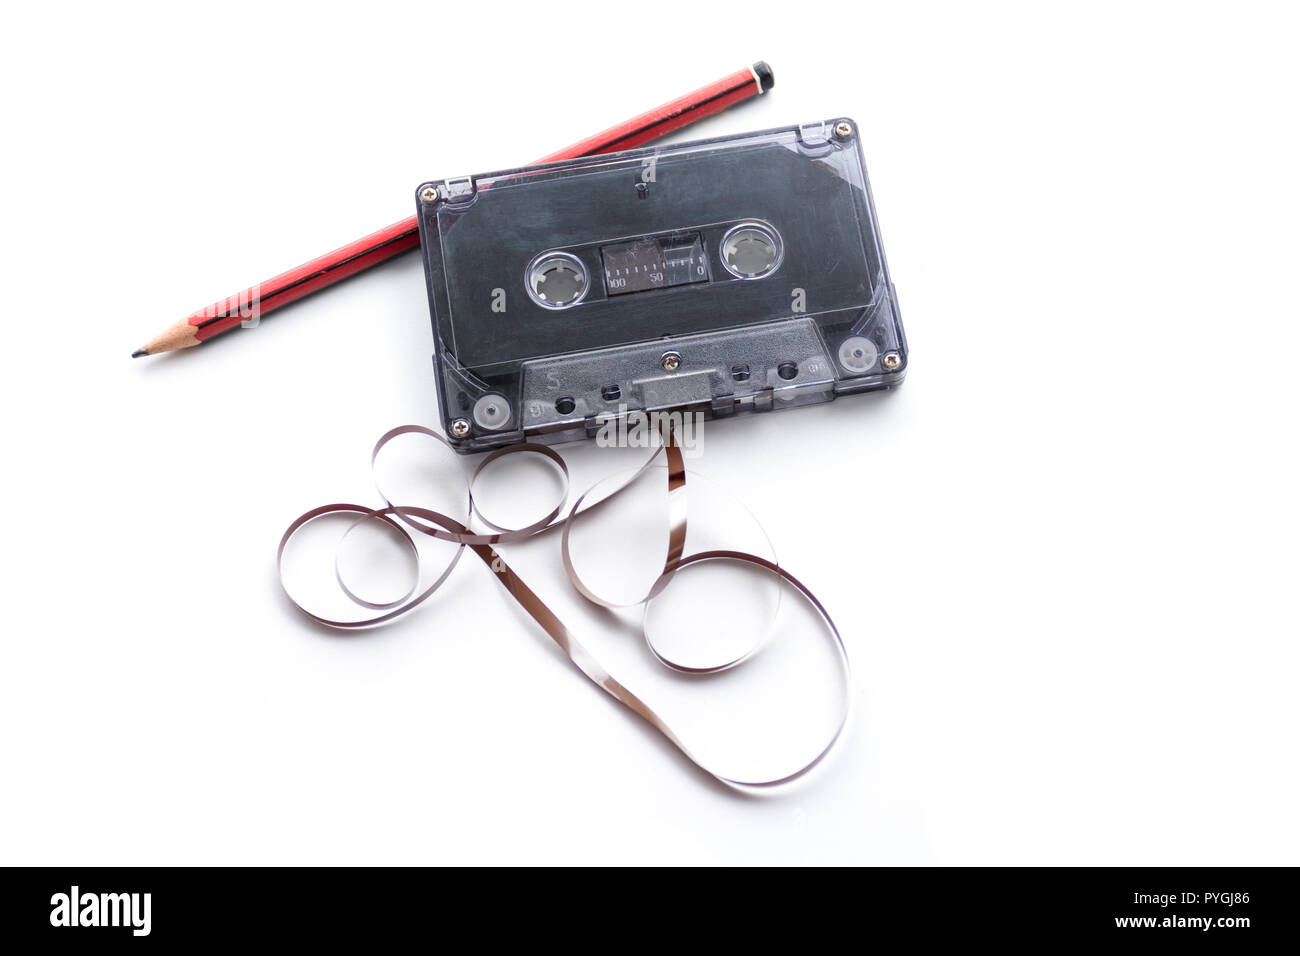 Red pencil and compact cassette with tape coming out - Stock Image